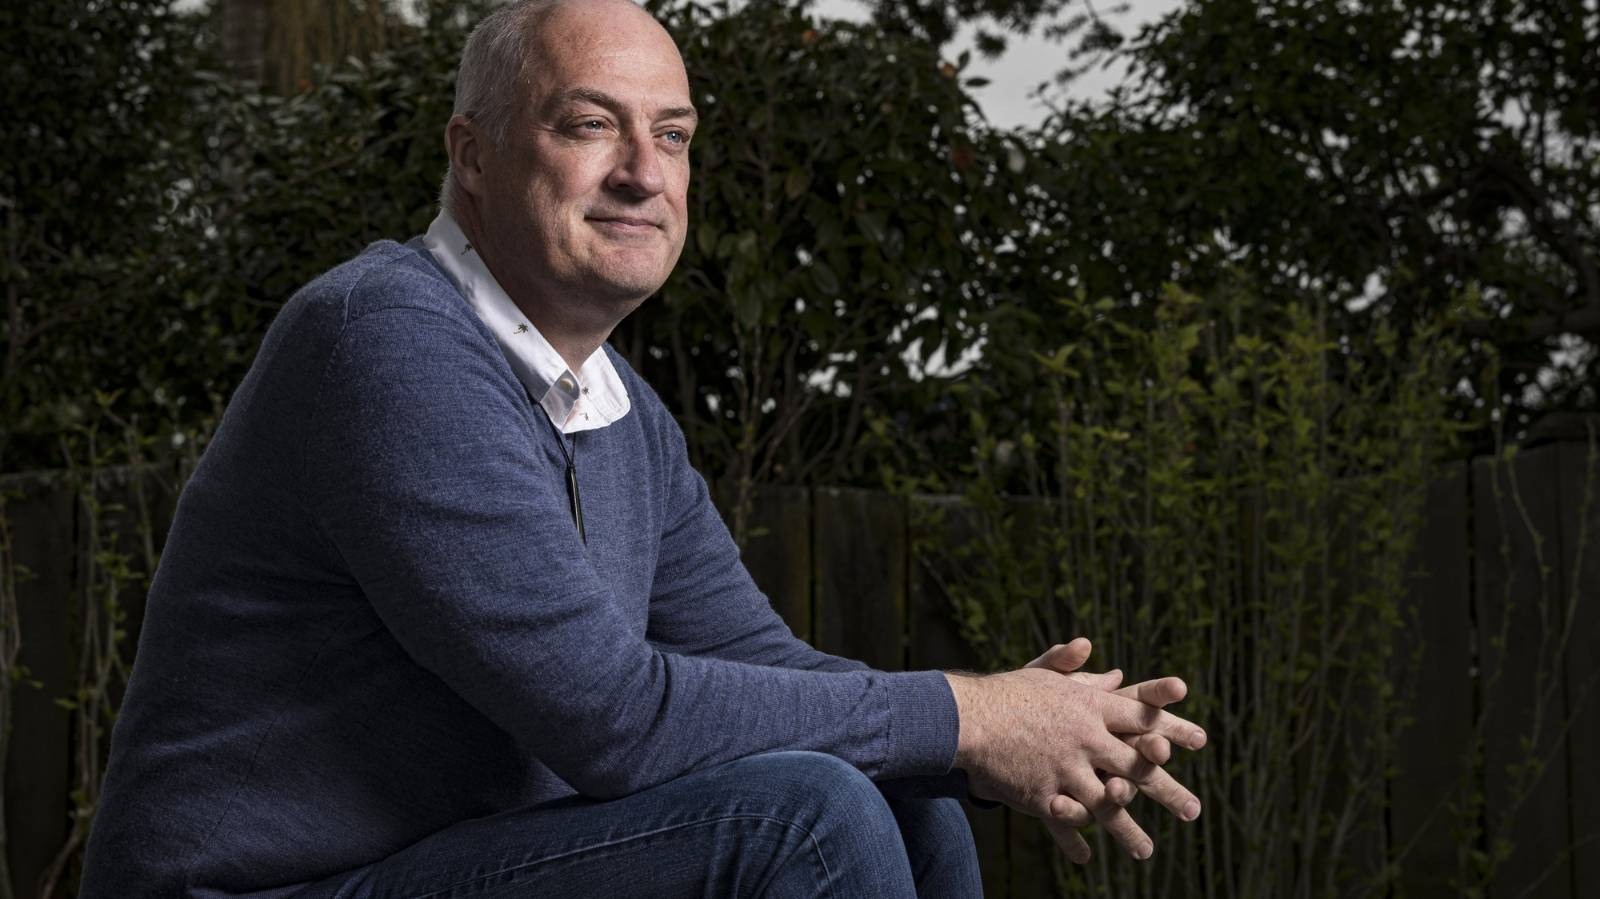 Cancer advocate David Downs calls himself a 'genetically modified optimist'